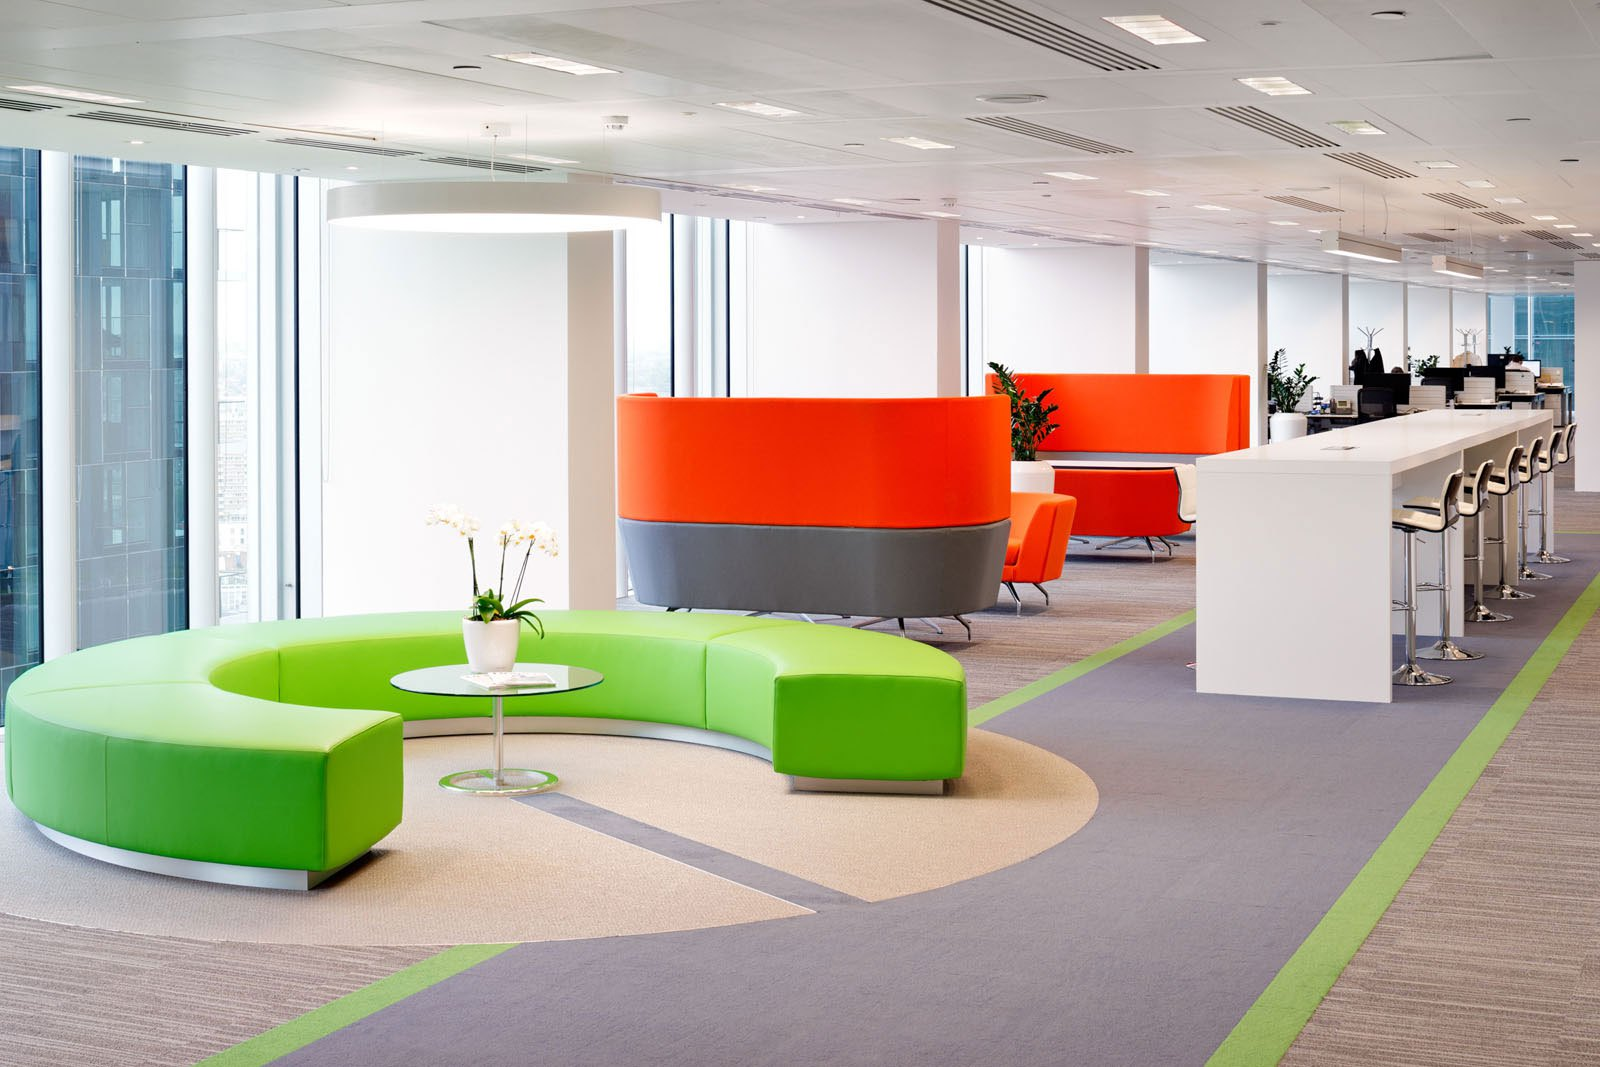 Demandware-london-office-4